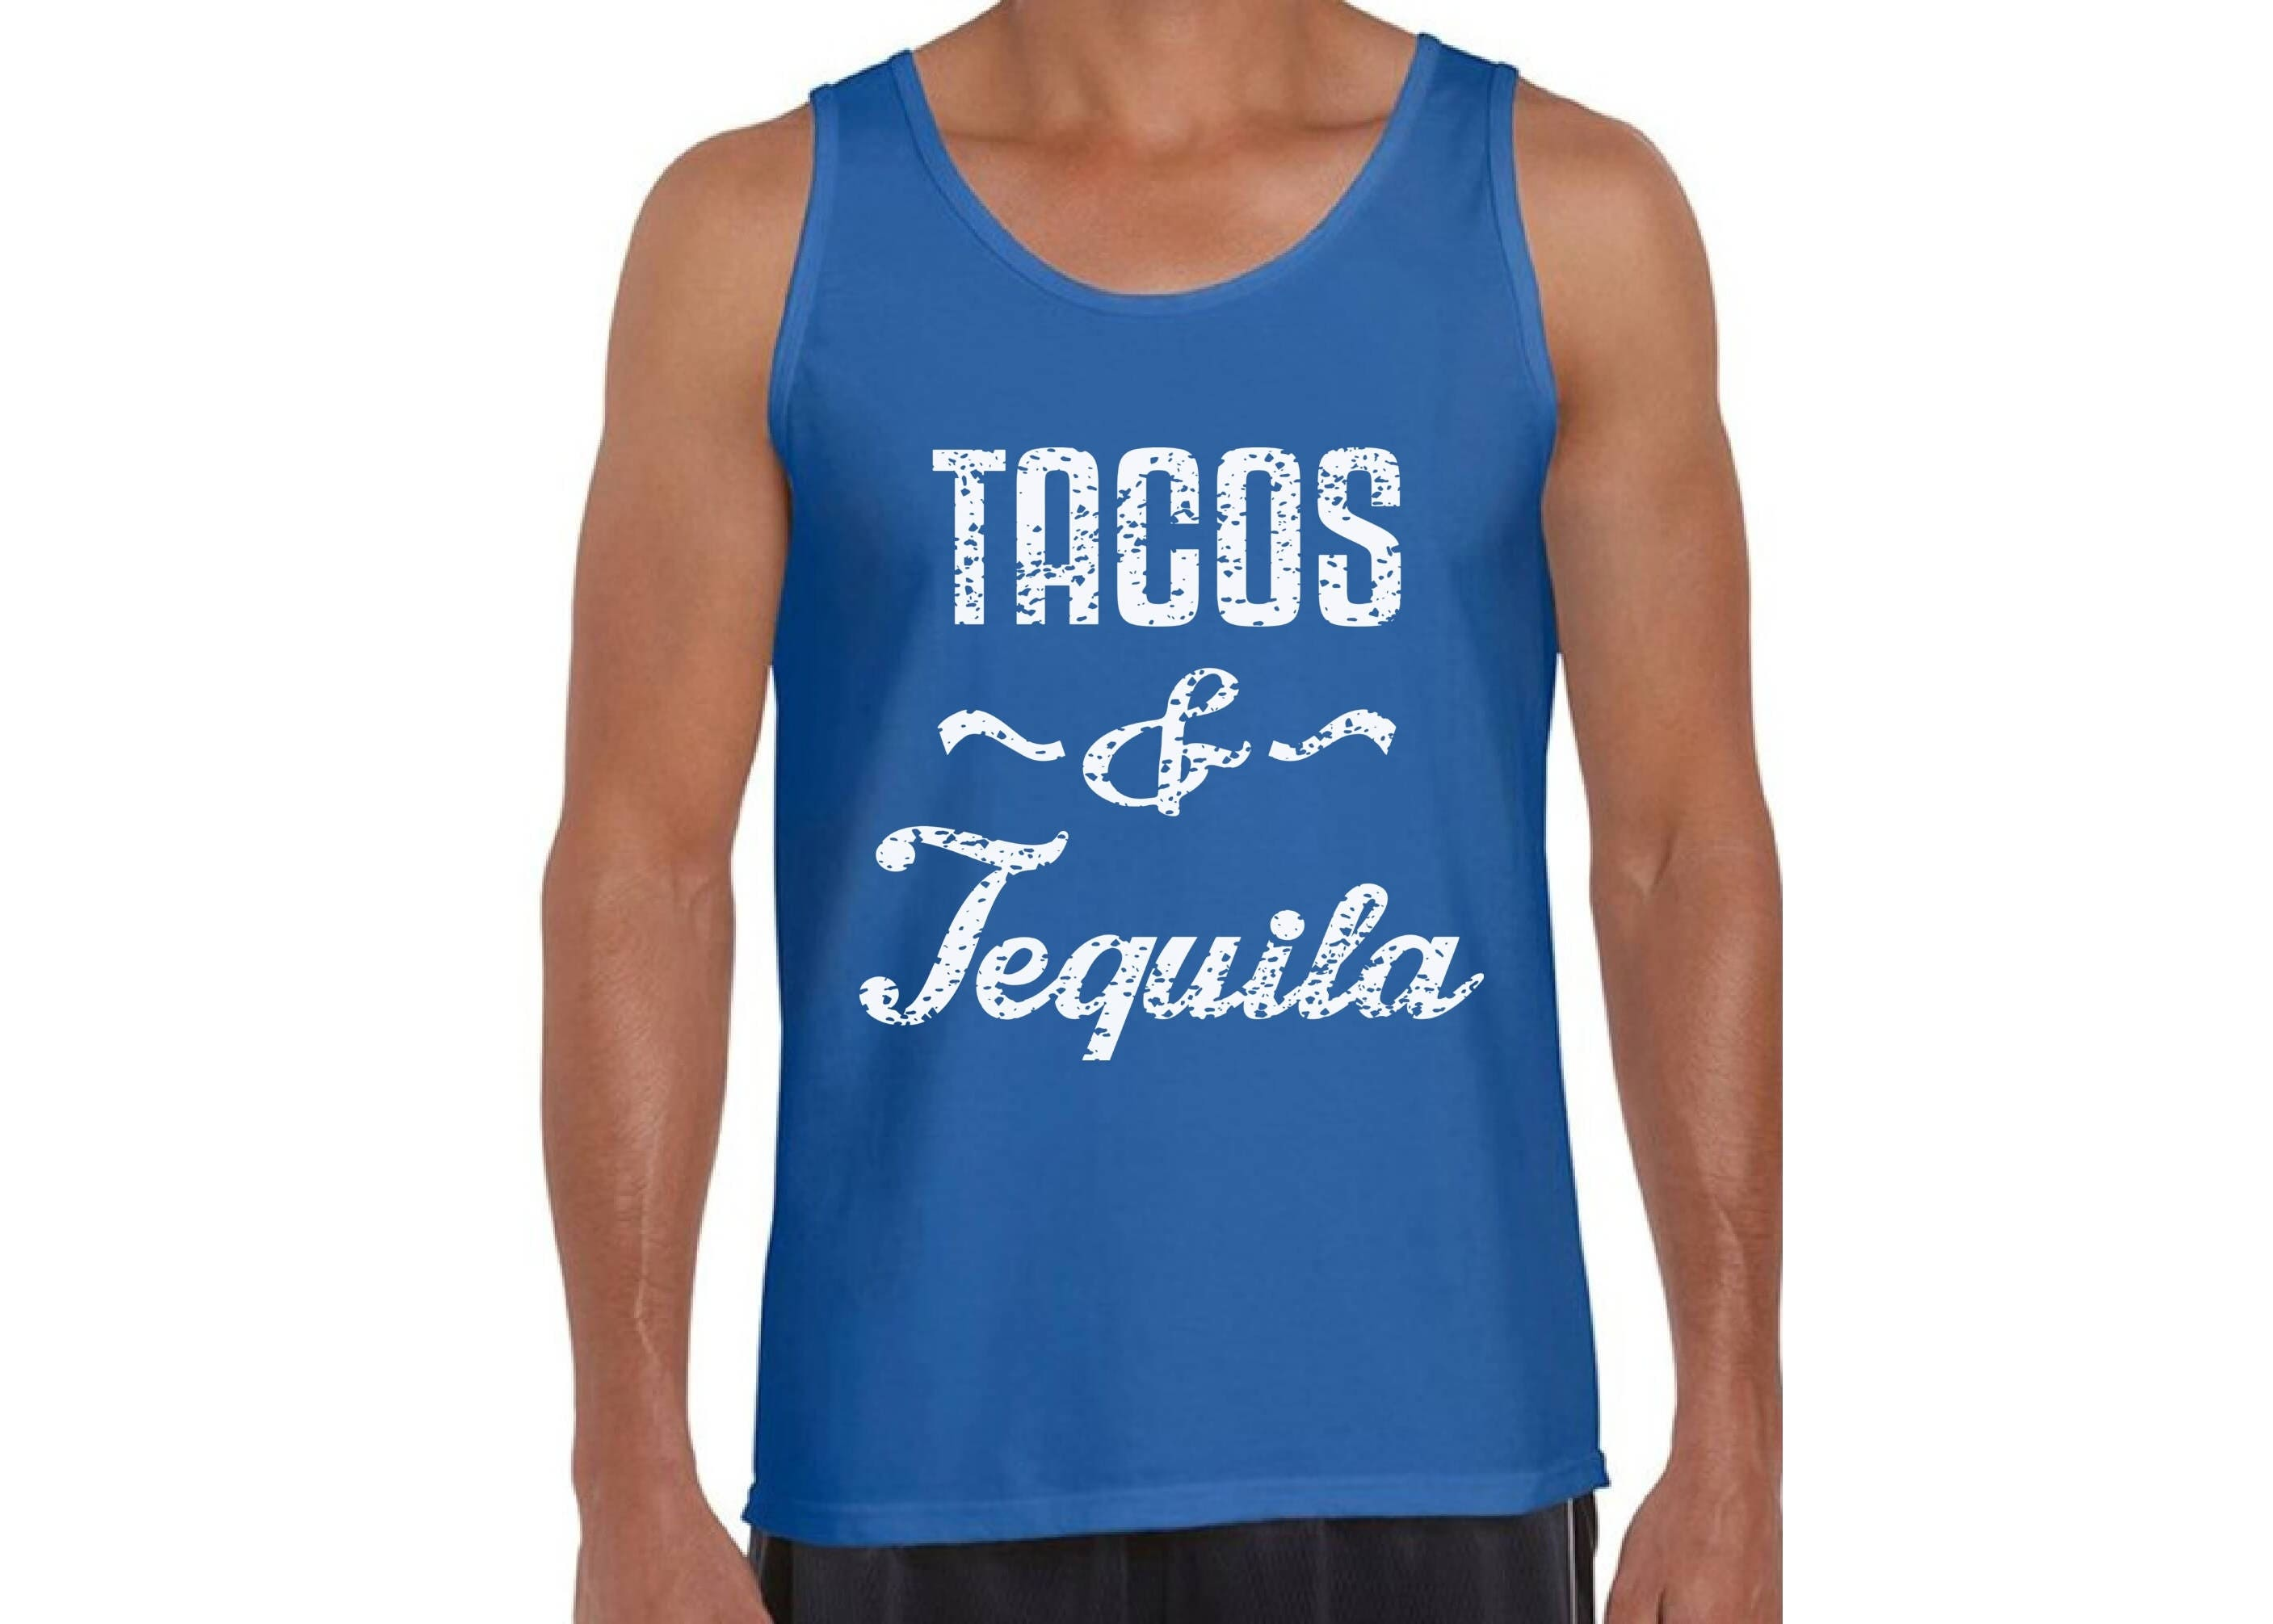 Tacos And Tequila Tank Tops For Men Graphic Tank Tops Taco